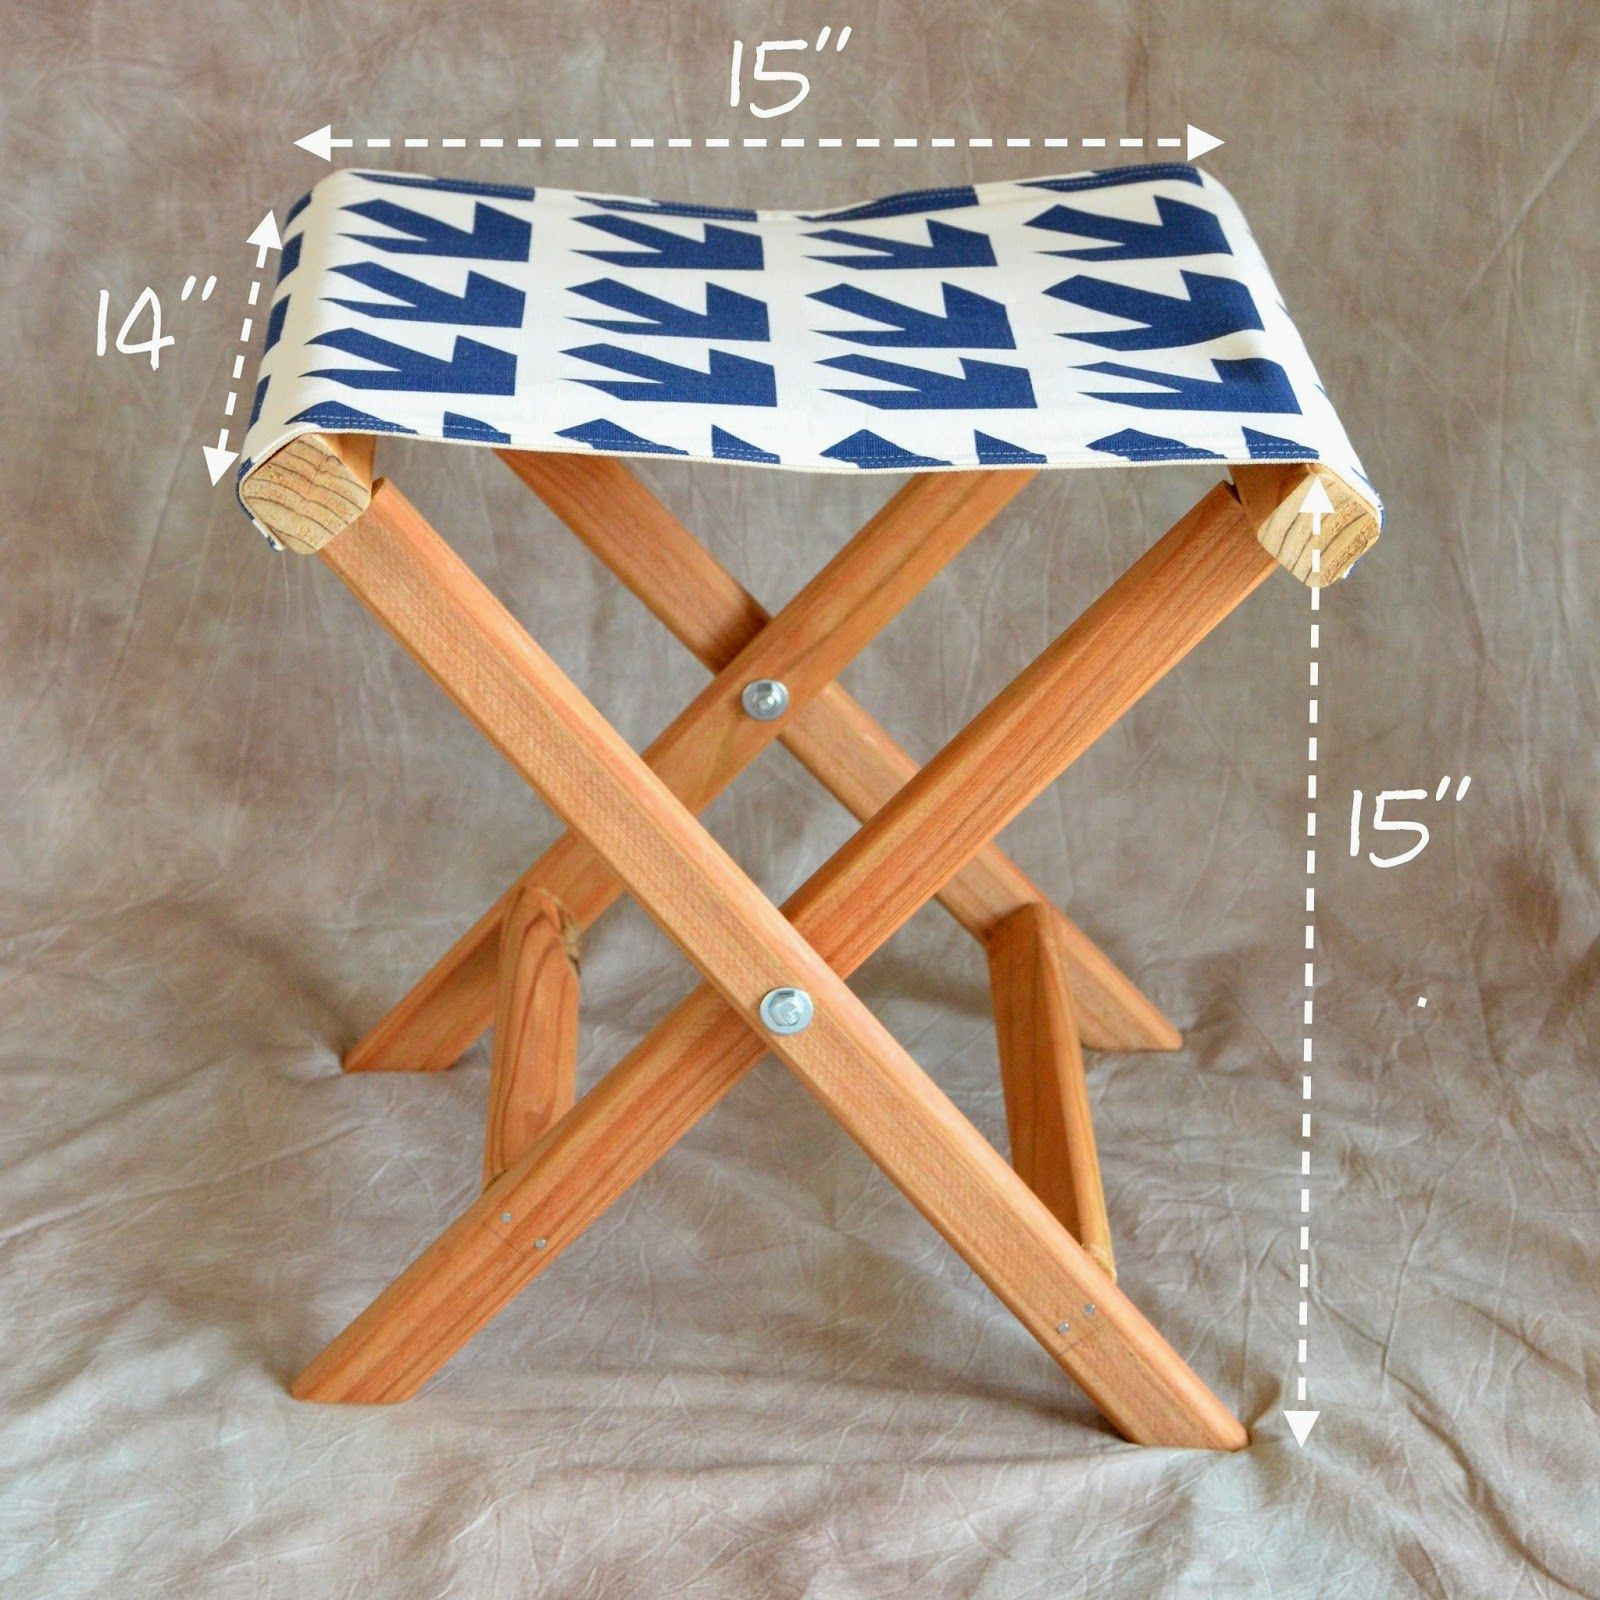 How To Make A Folding Camp Stool This Looks Easy Enough